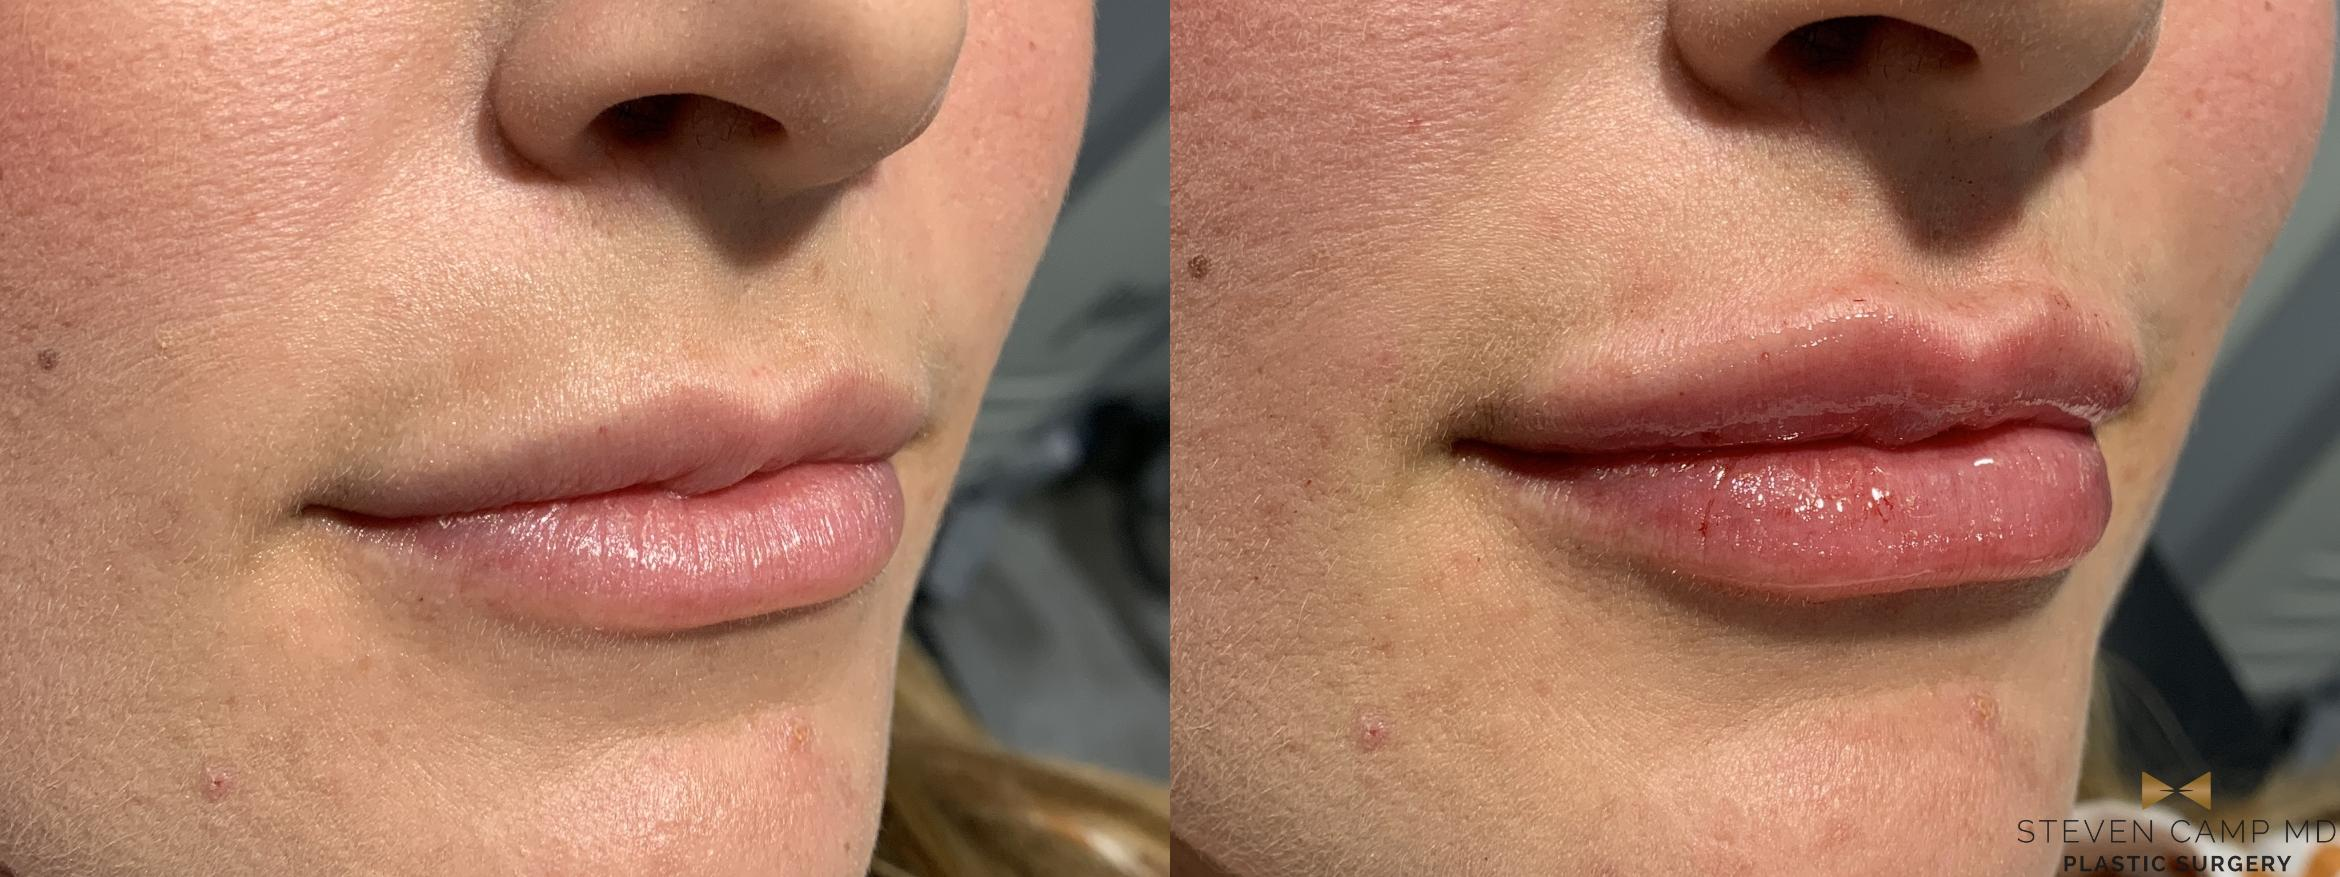 Dermal Fillers Before & After Photo | Fort Worth, Texas | Steven Camp MD Plastic Surgery